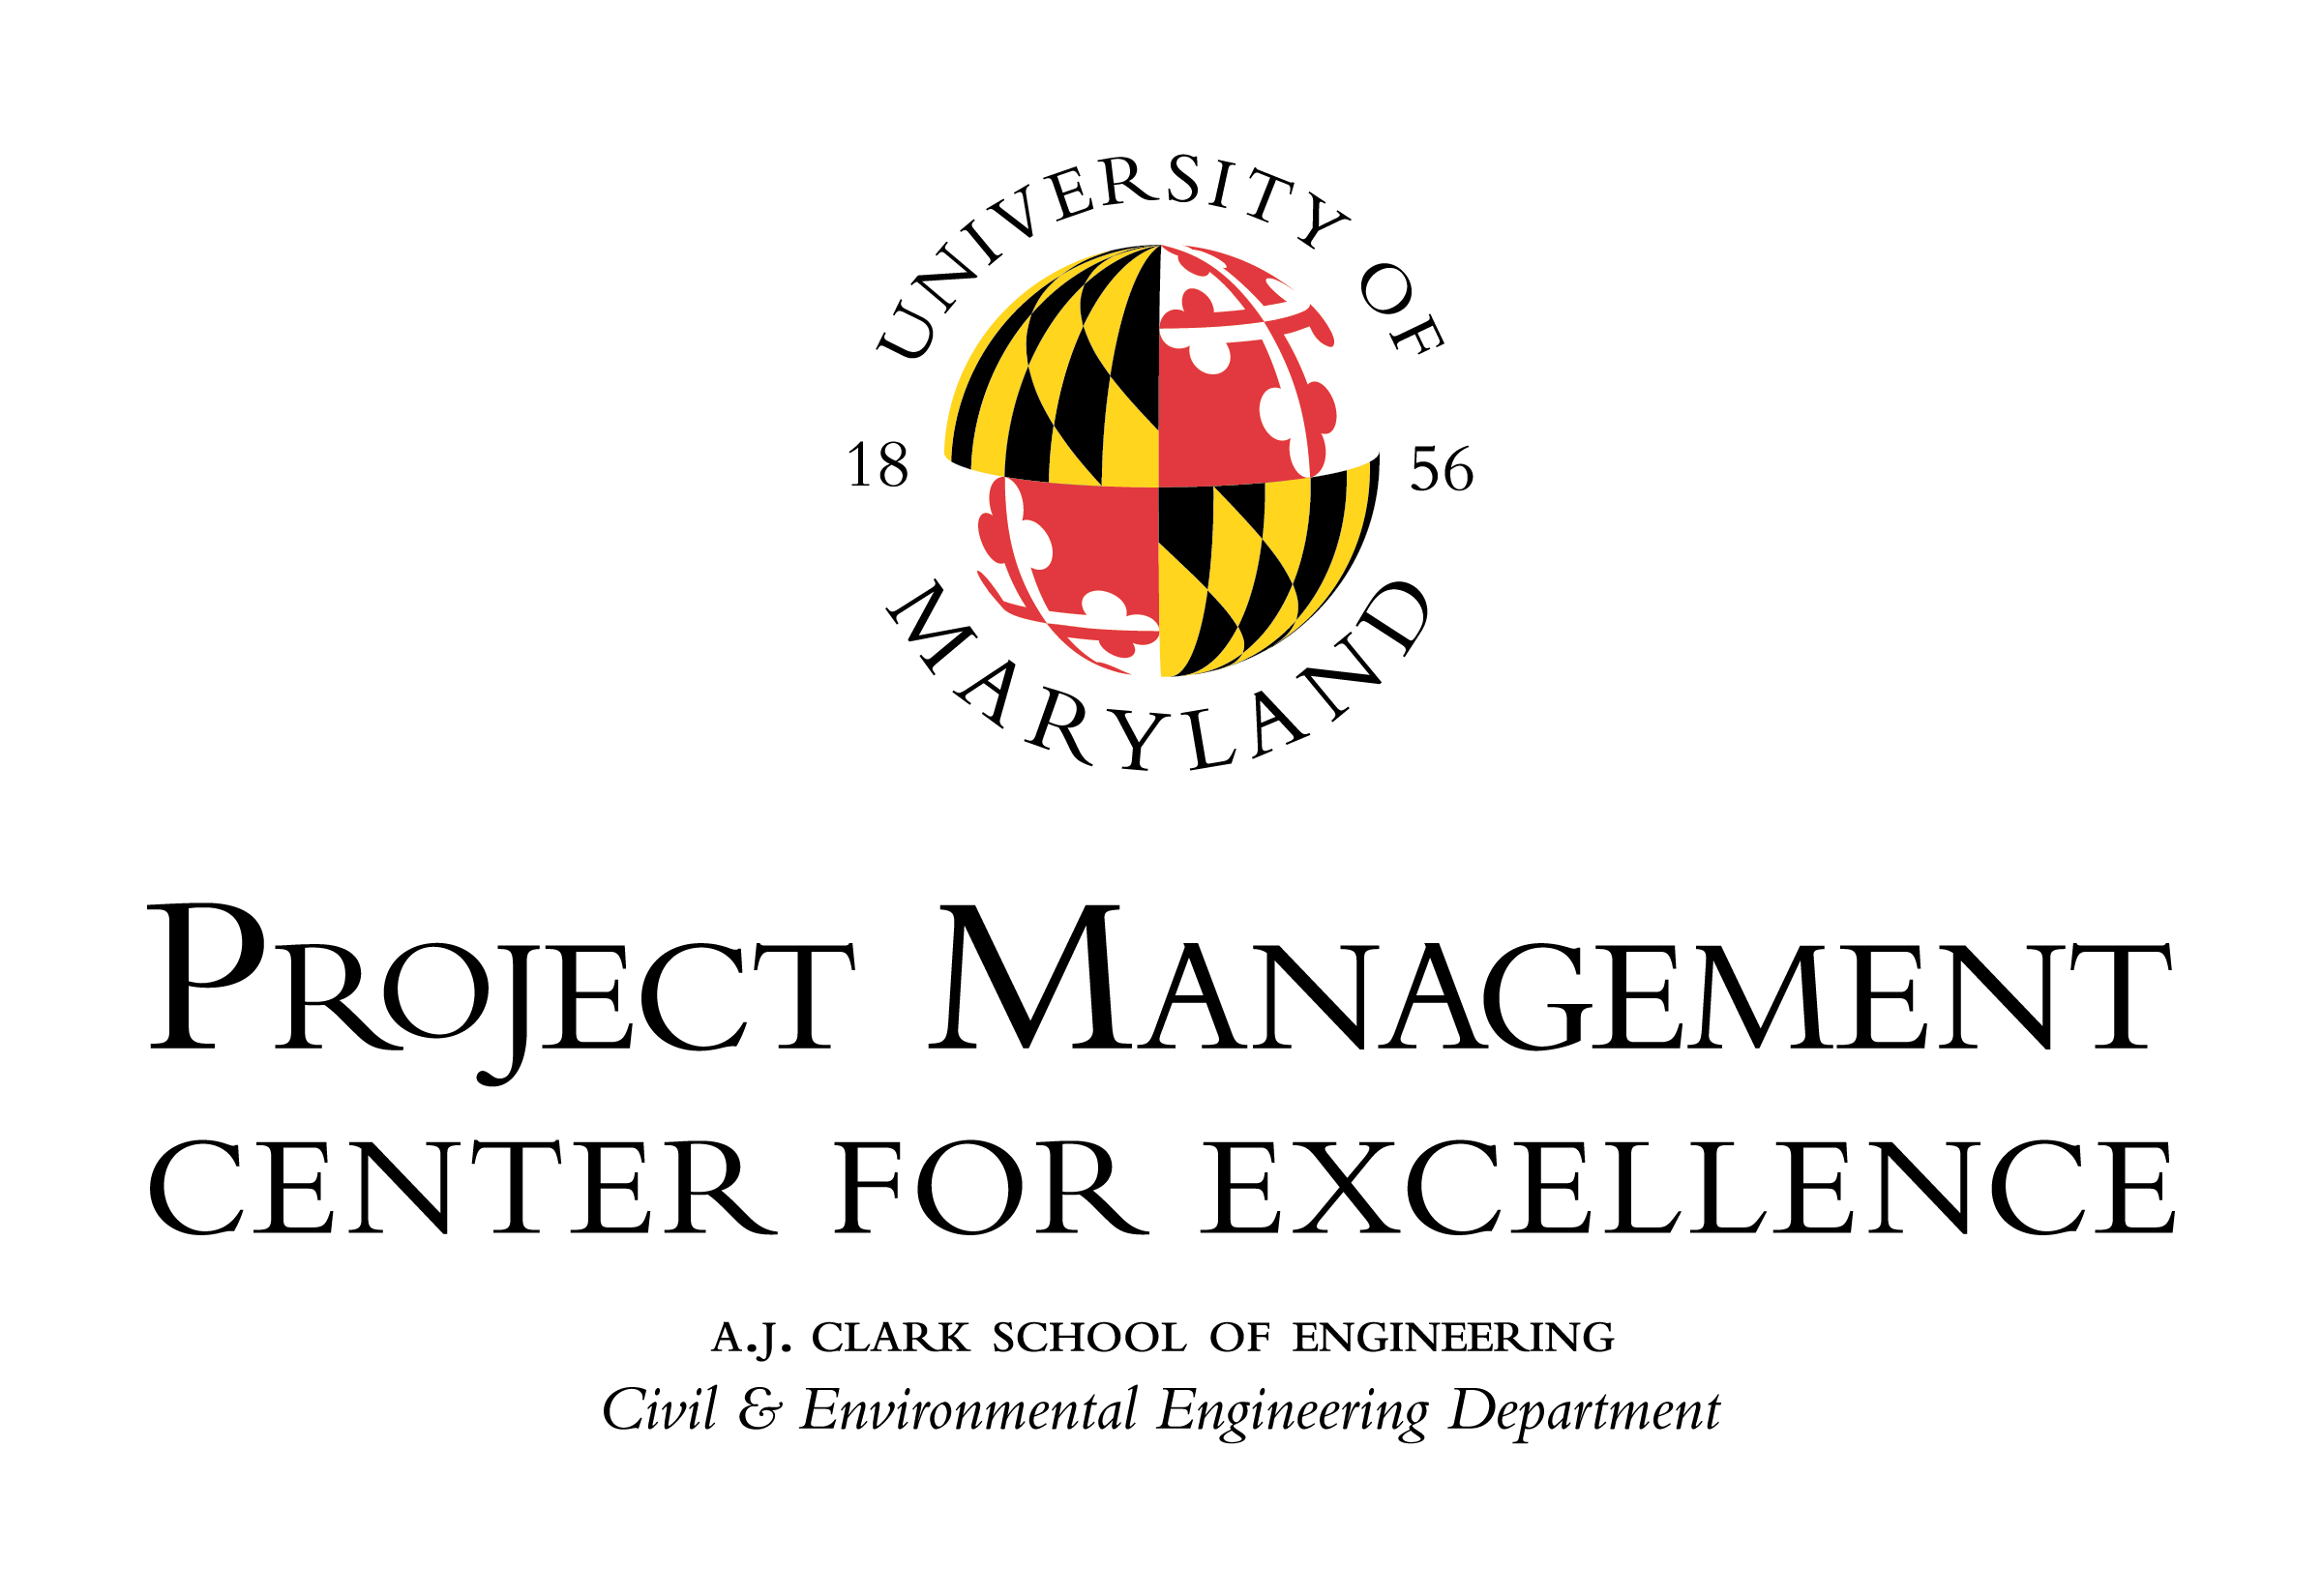 UMD Project Management Image